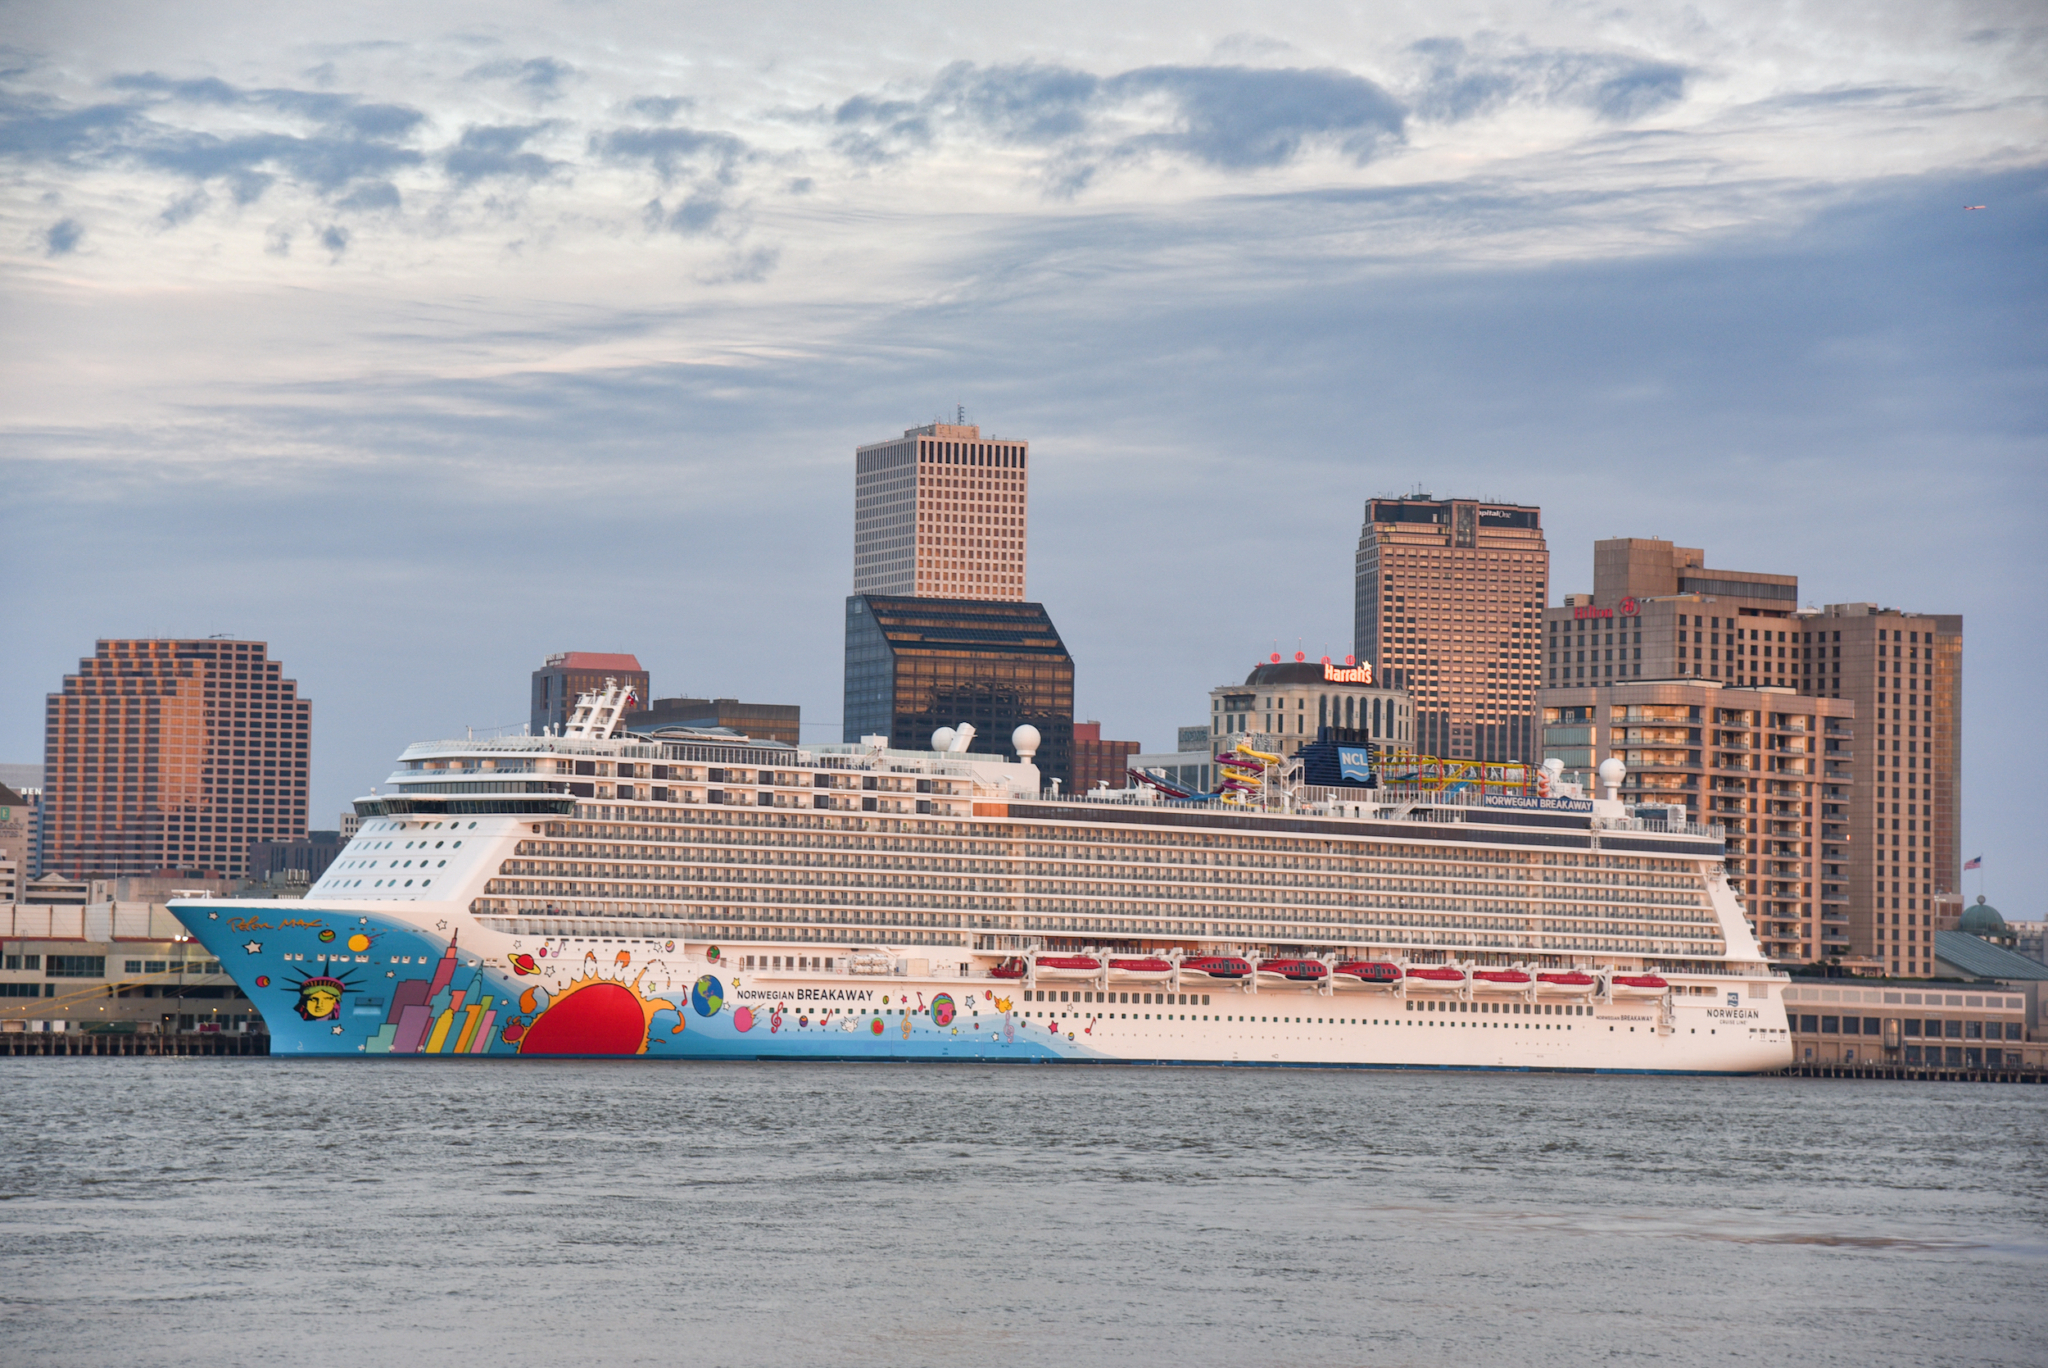 Norwegian Breakaway at Julia Street